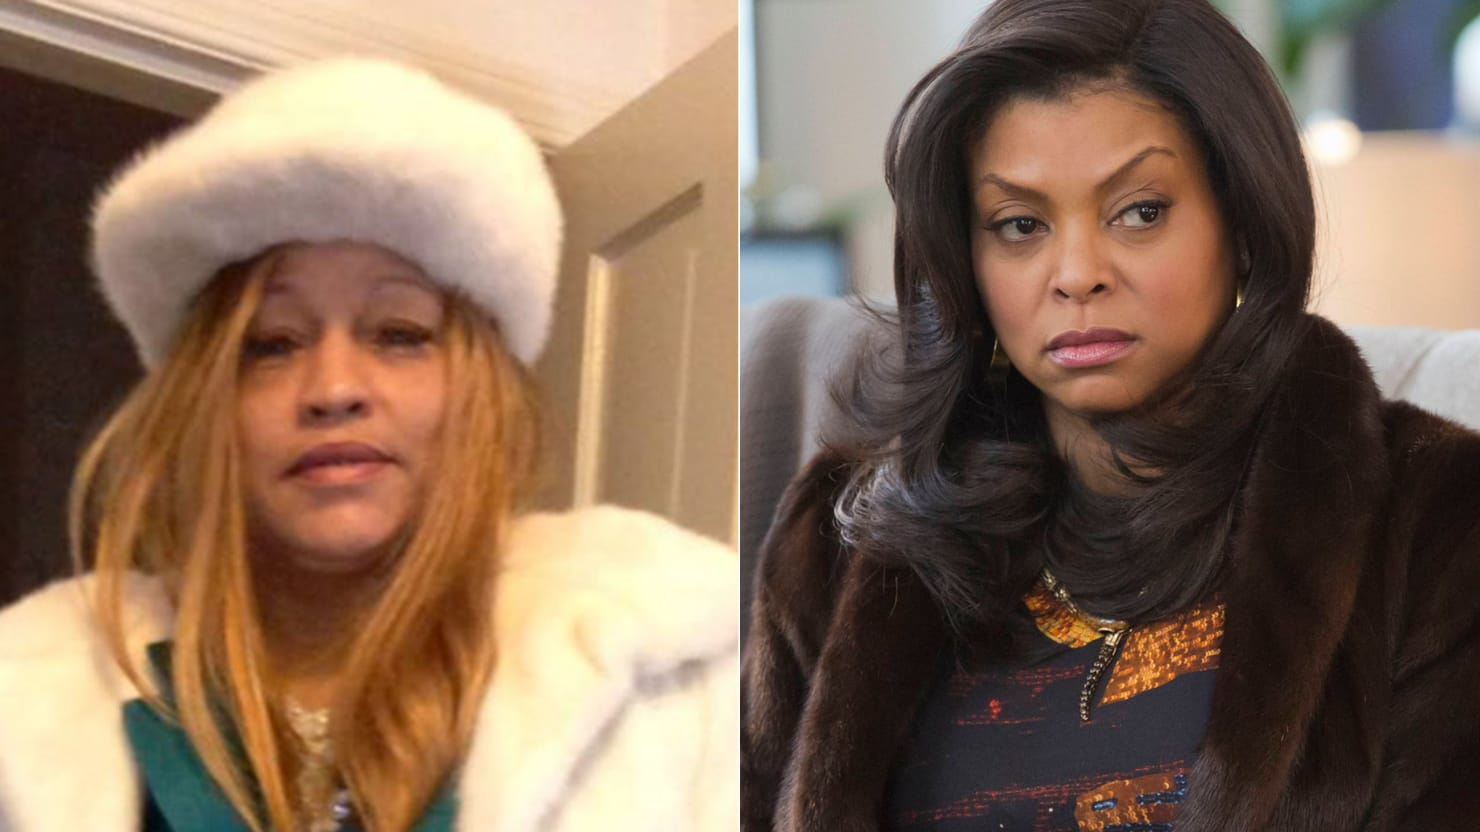 The 'Real' Cookie Lyons Sues 'Empire' For $300 Million, Claiming Fox Series Is Based on Her Life